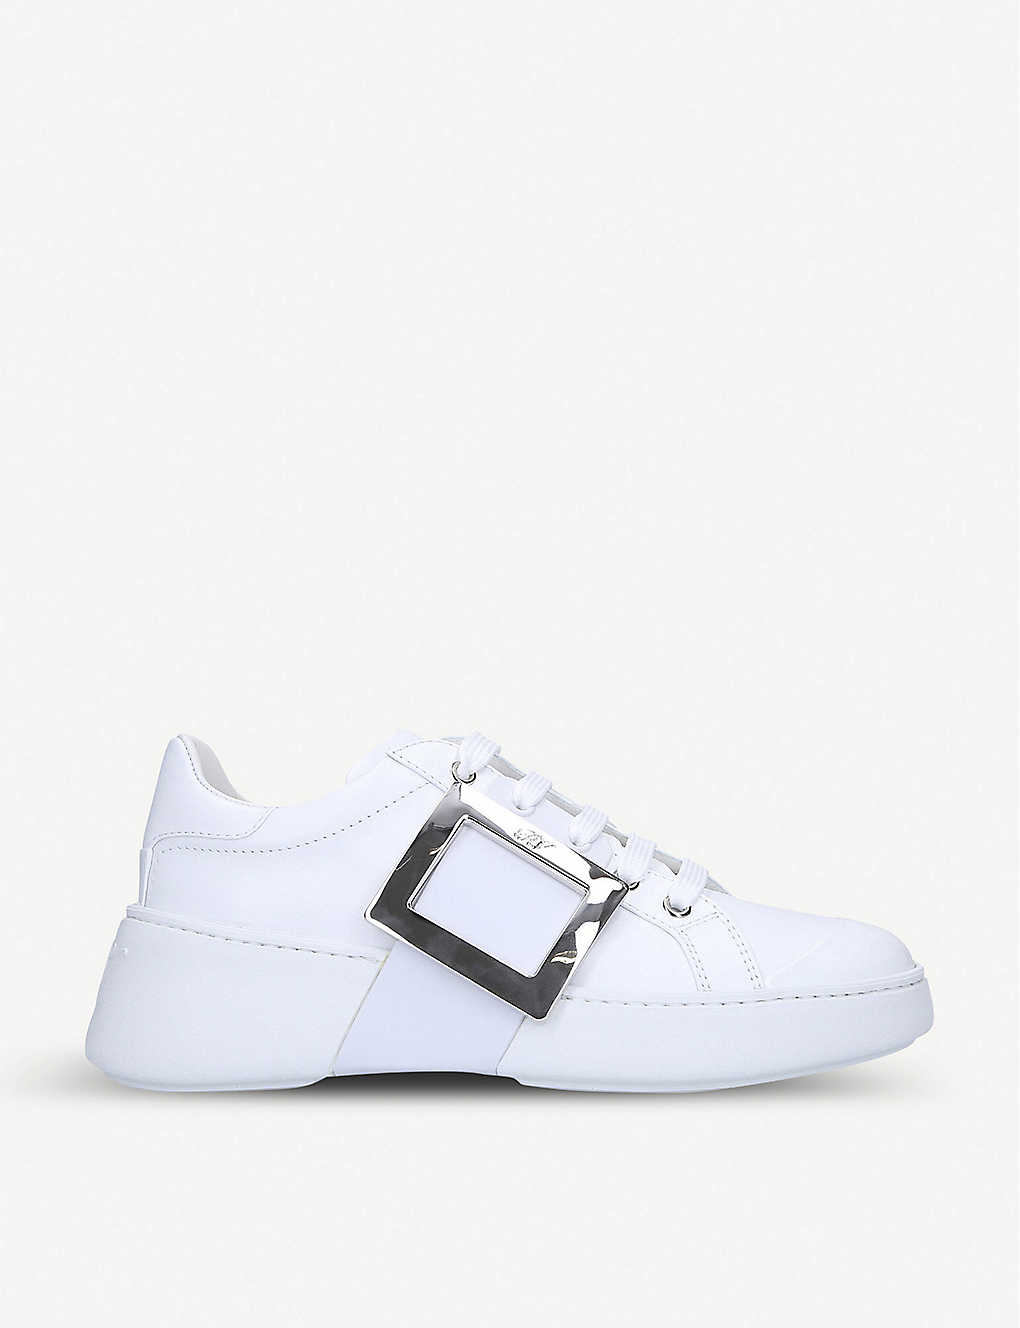 Roger Vivier Shoes Viv Skate buckle-embellished leather trainers